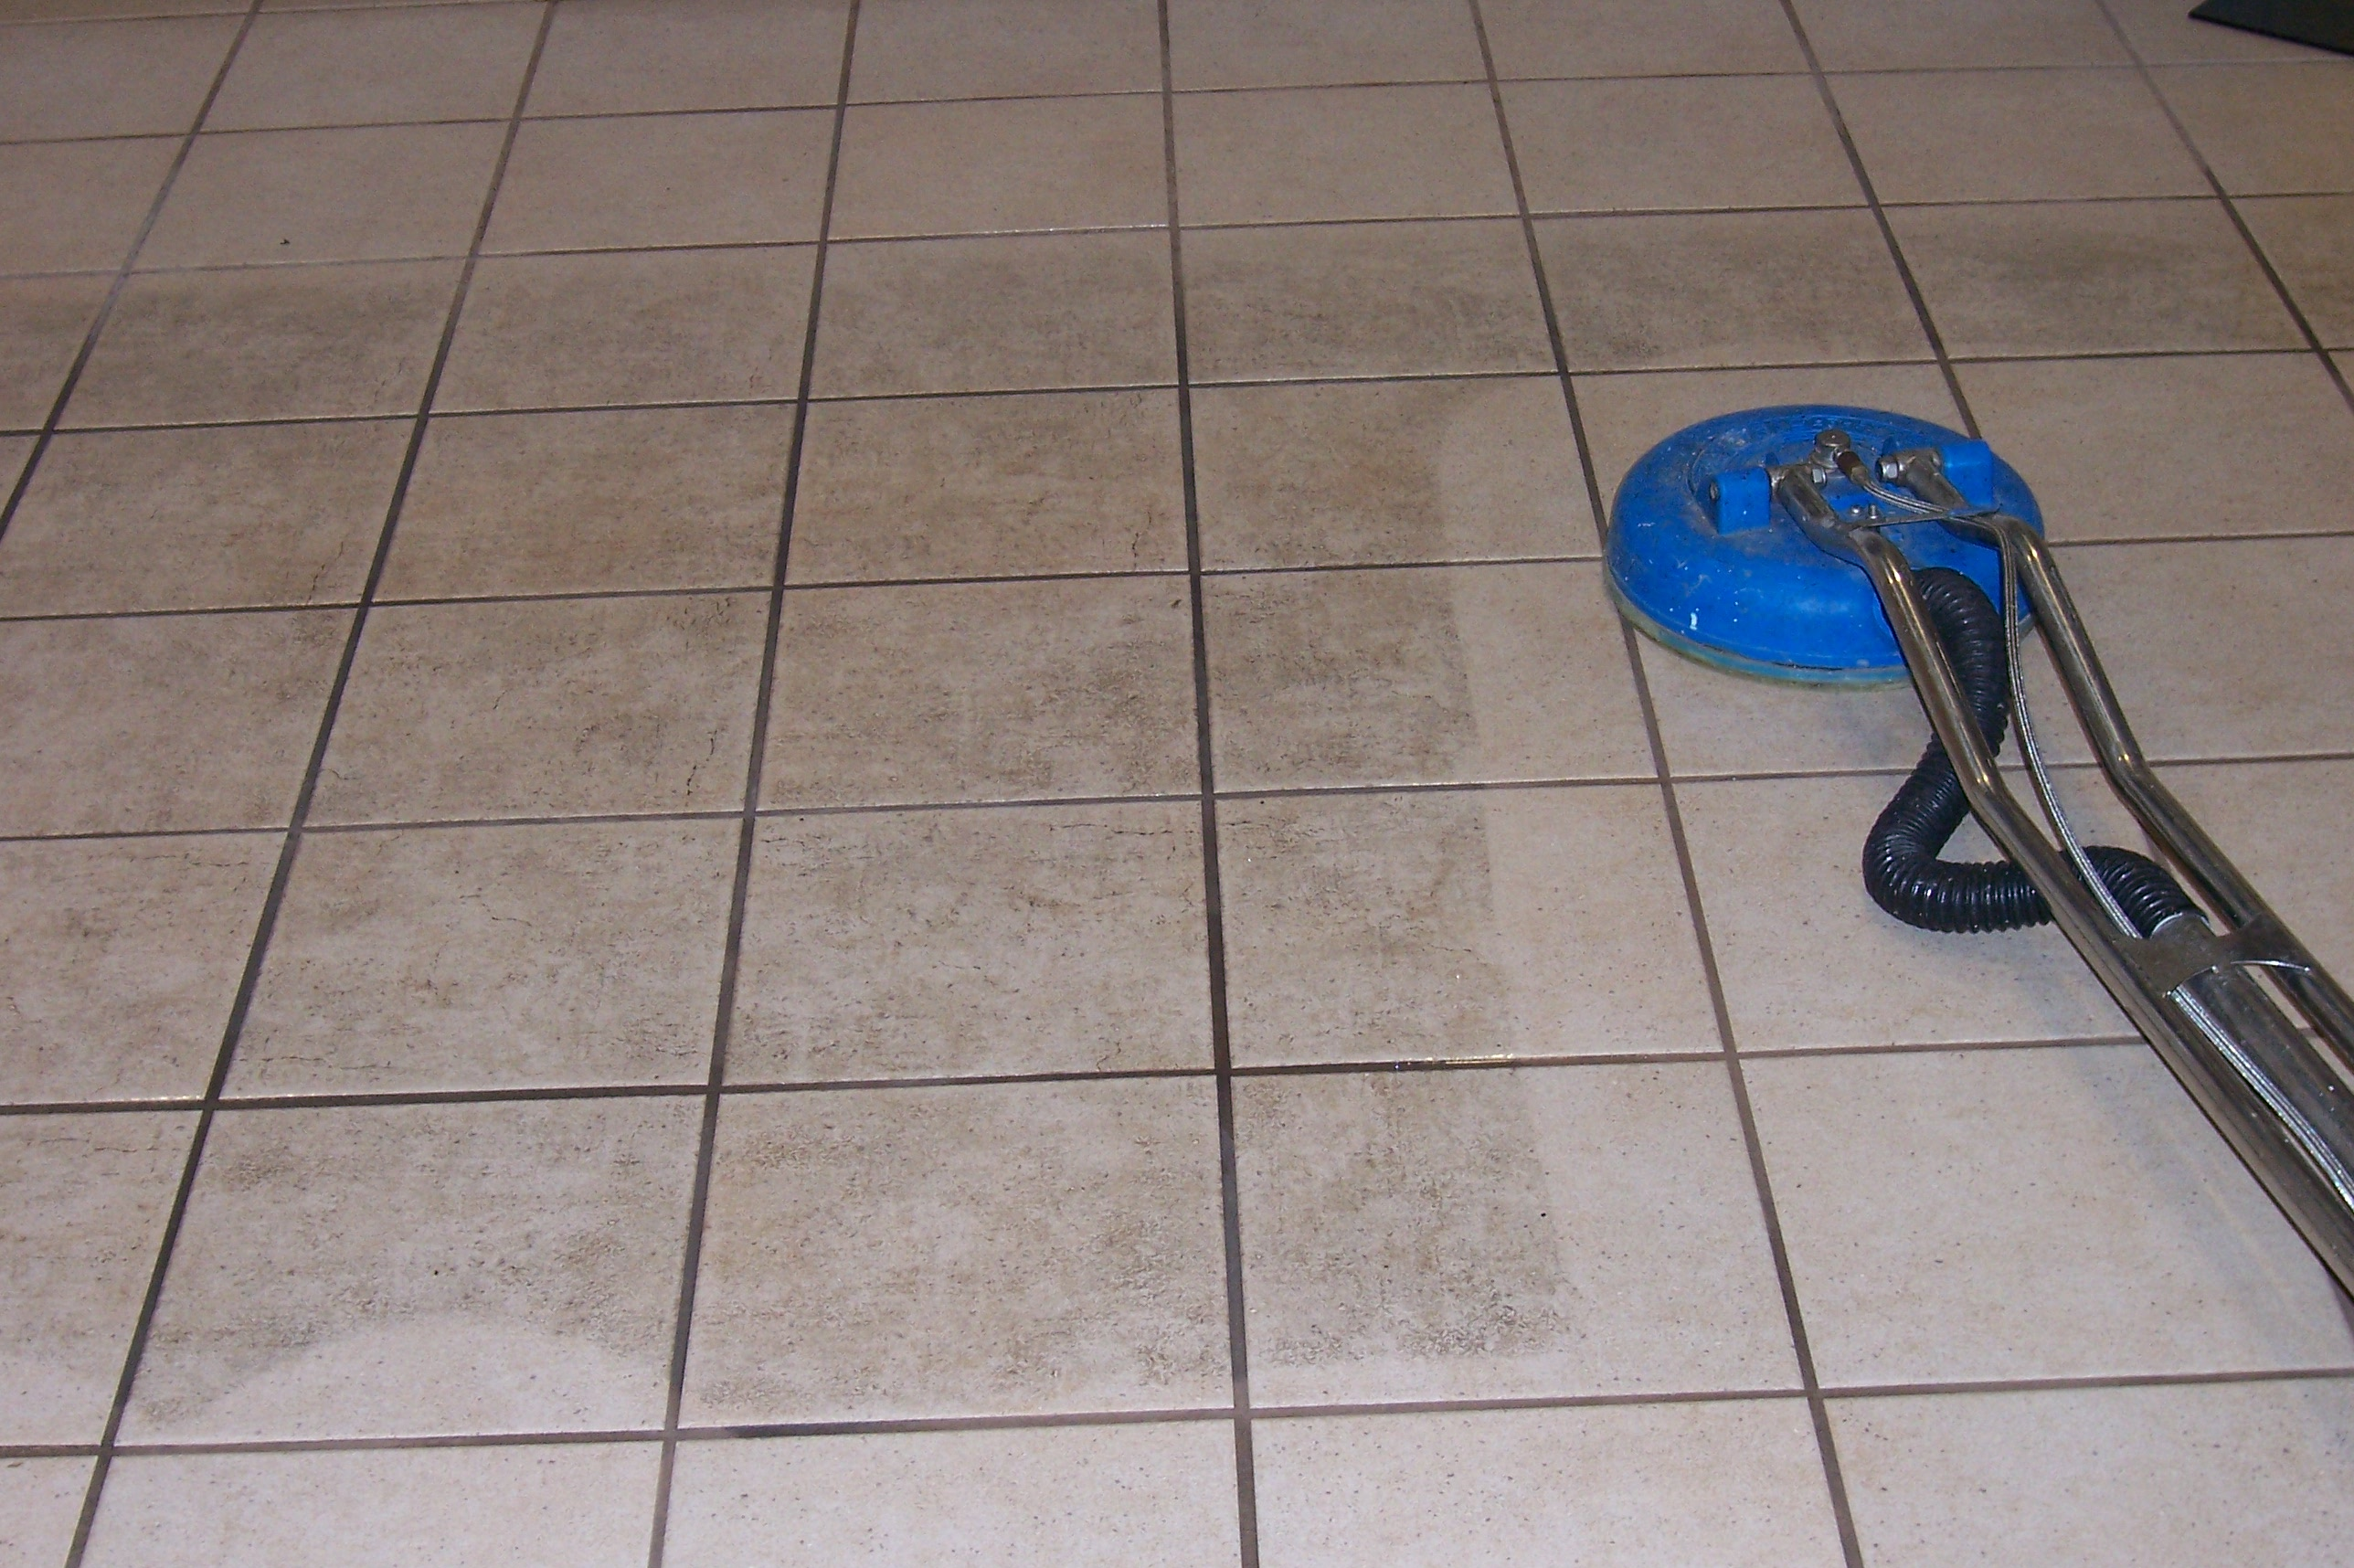 Tiles and grout cleaning ibx services tiles and grout cleaning dailygadgetfo Choice Image